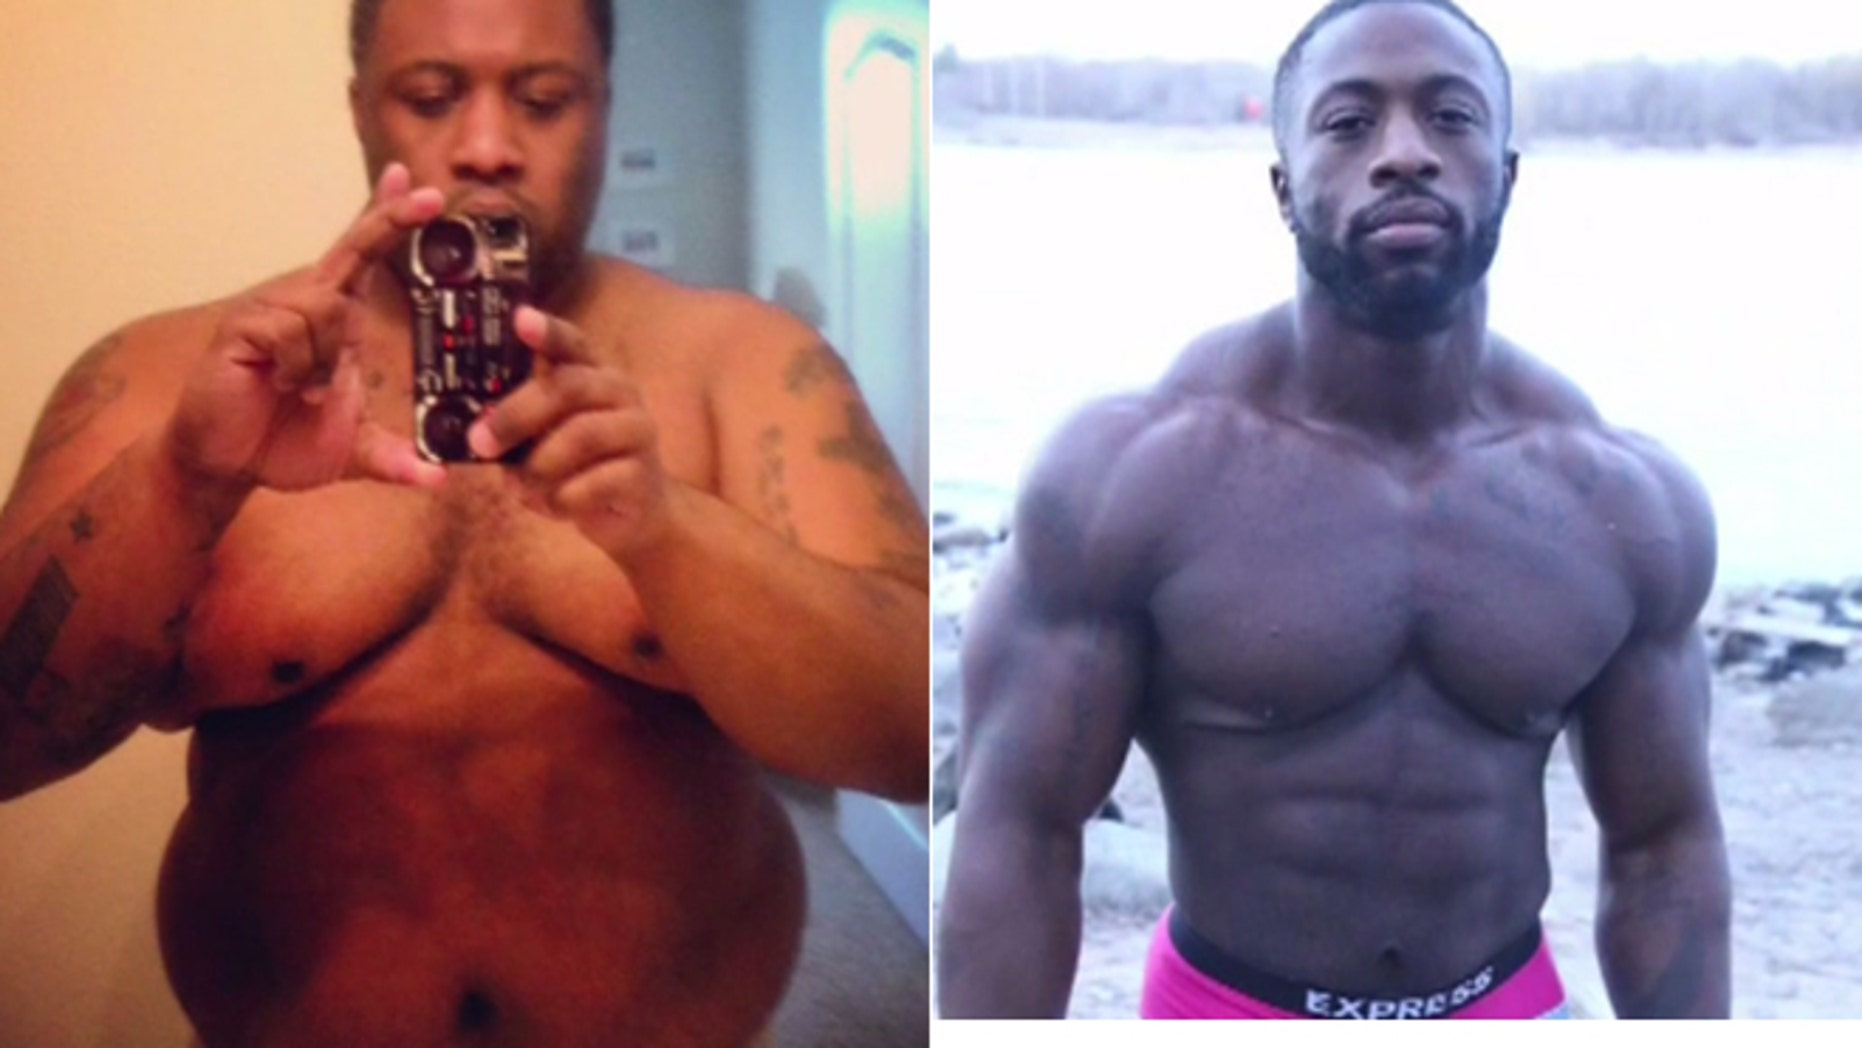 Rashard Keen weight 350 before changing his lifestyle habits and becoming a body builder.